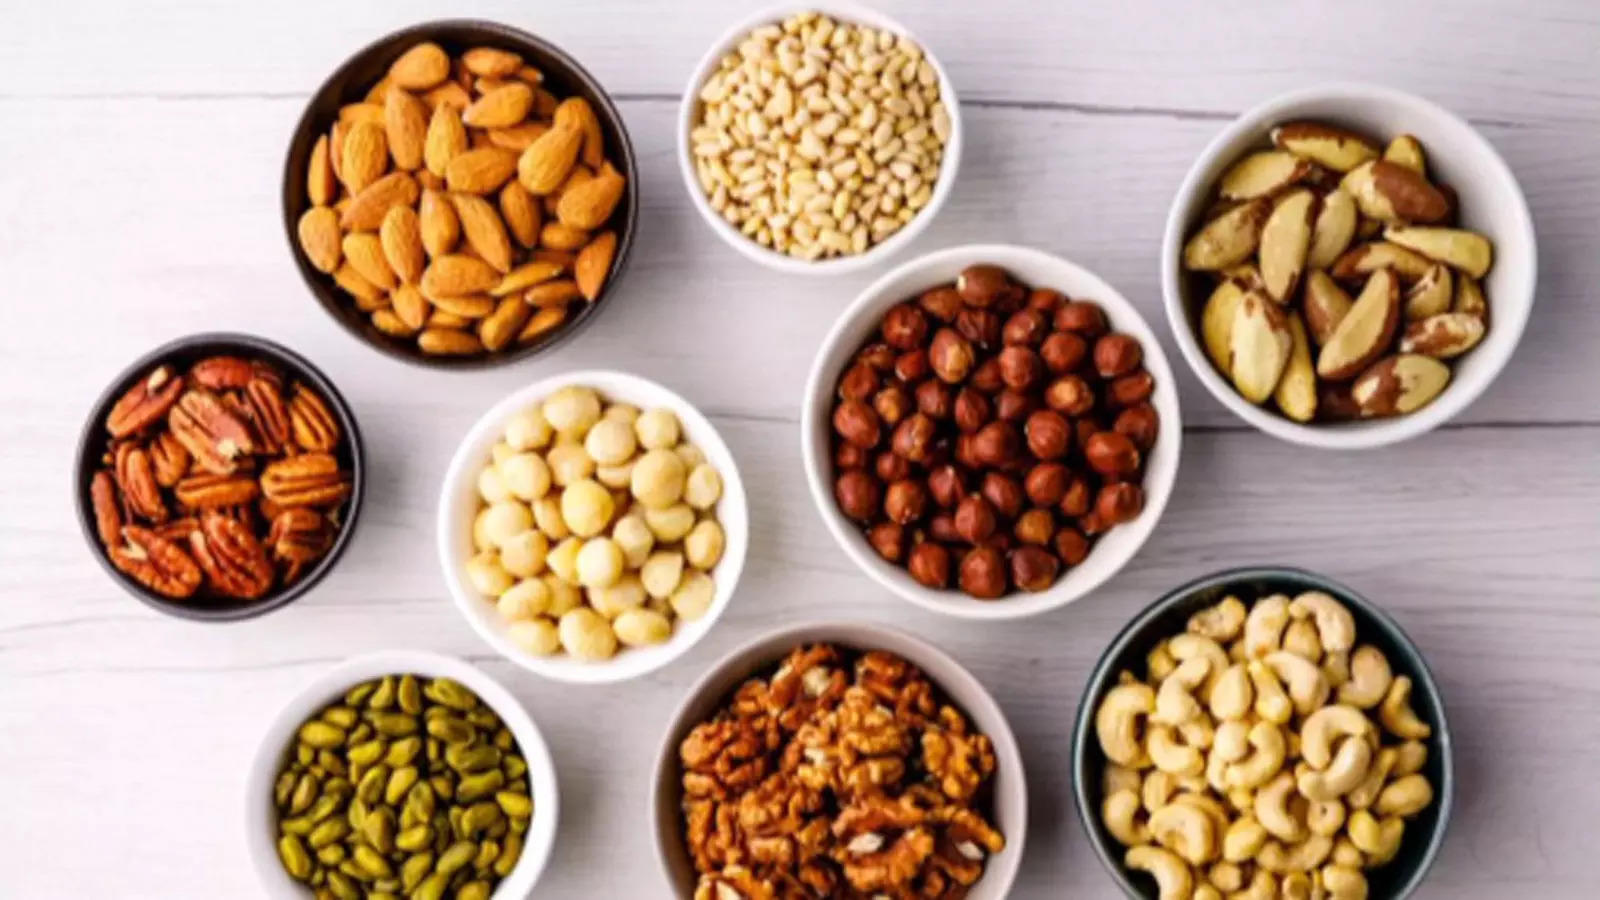 high-intake-of-fatty-acid-in-nuts-seeds-plant-oils-linked-to-lower-death-risk-study